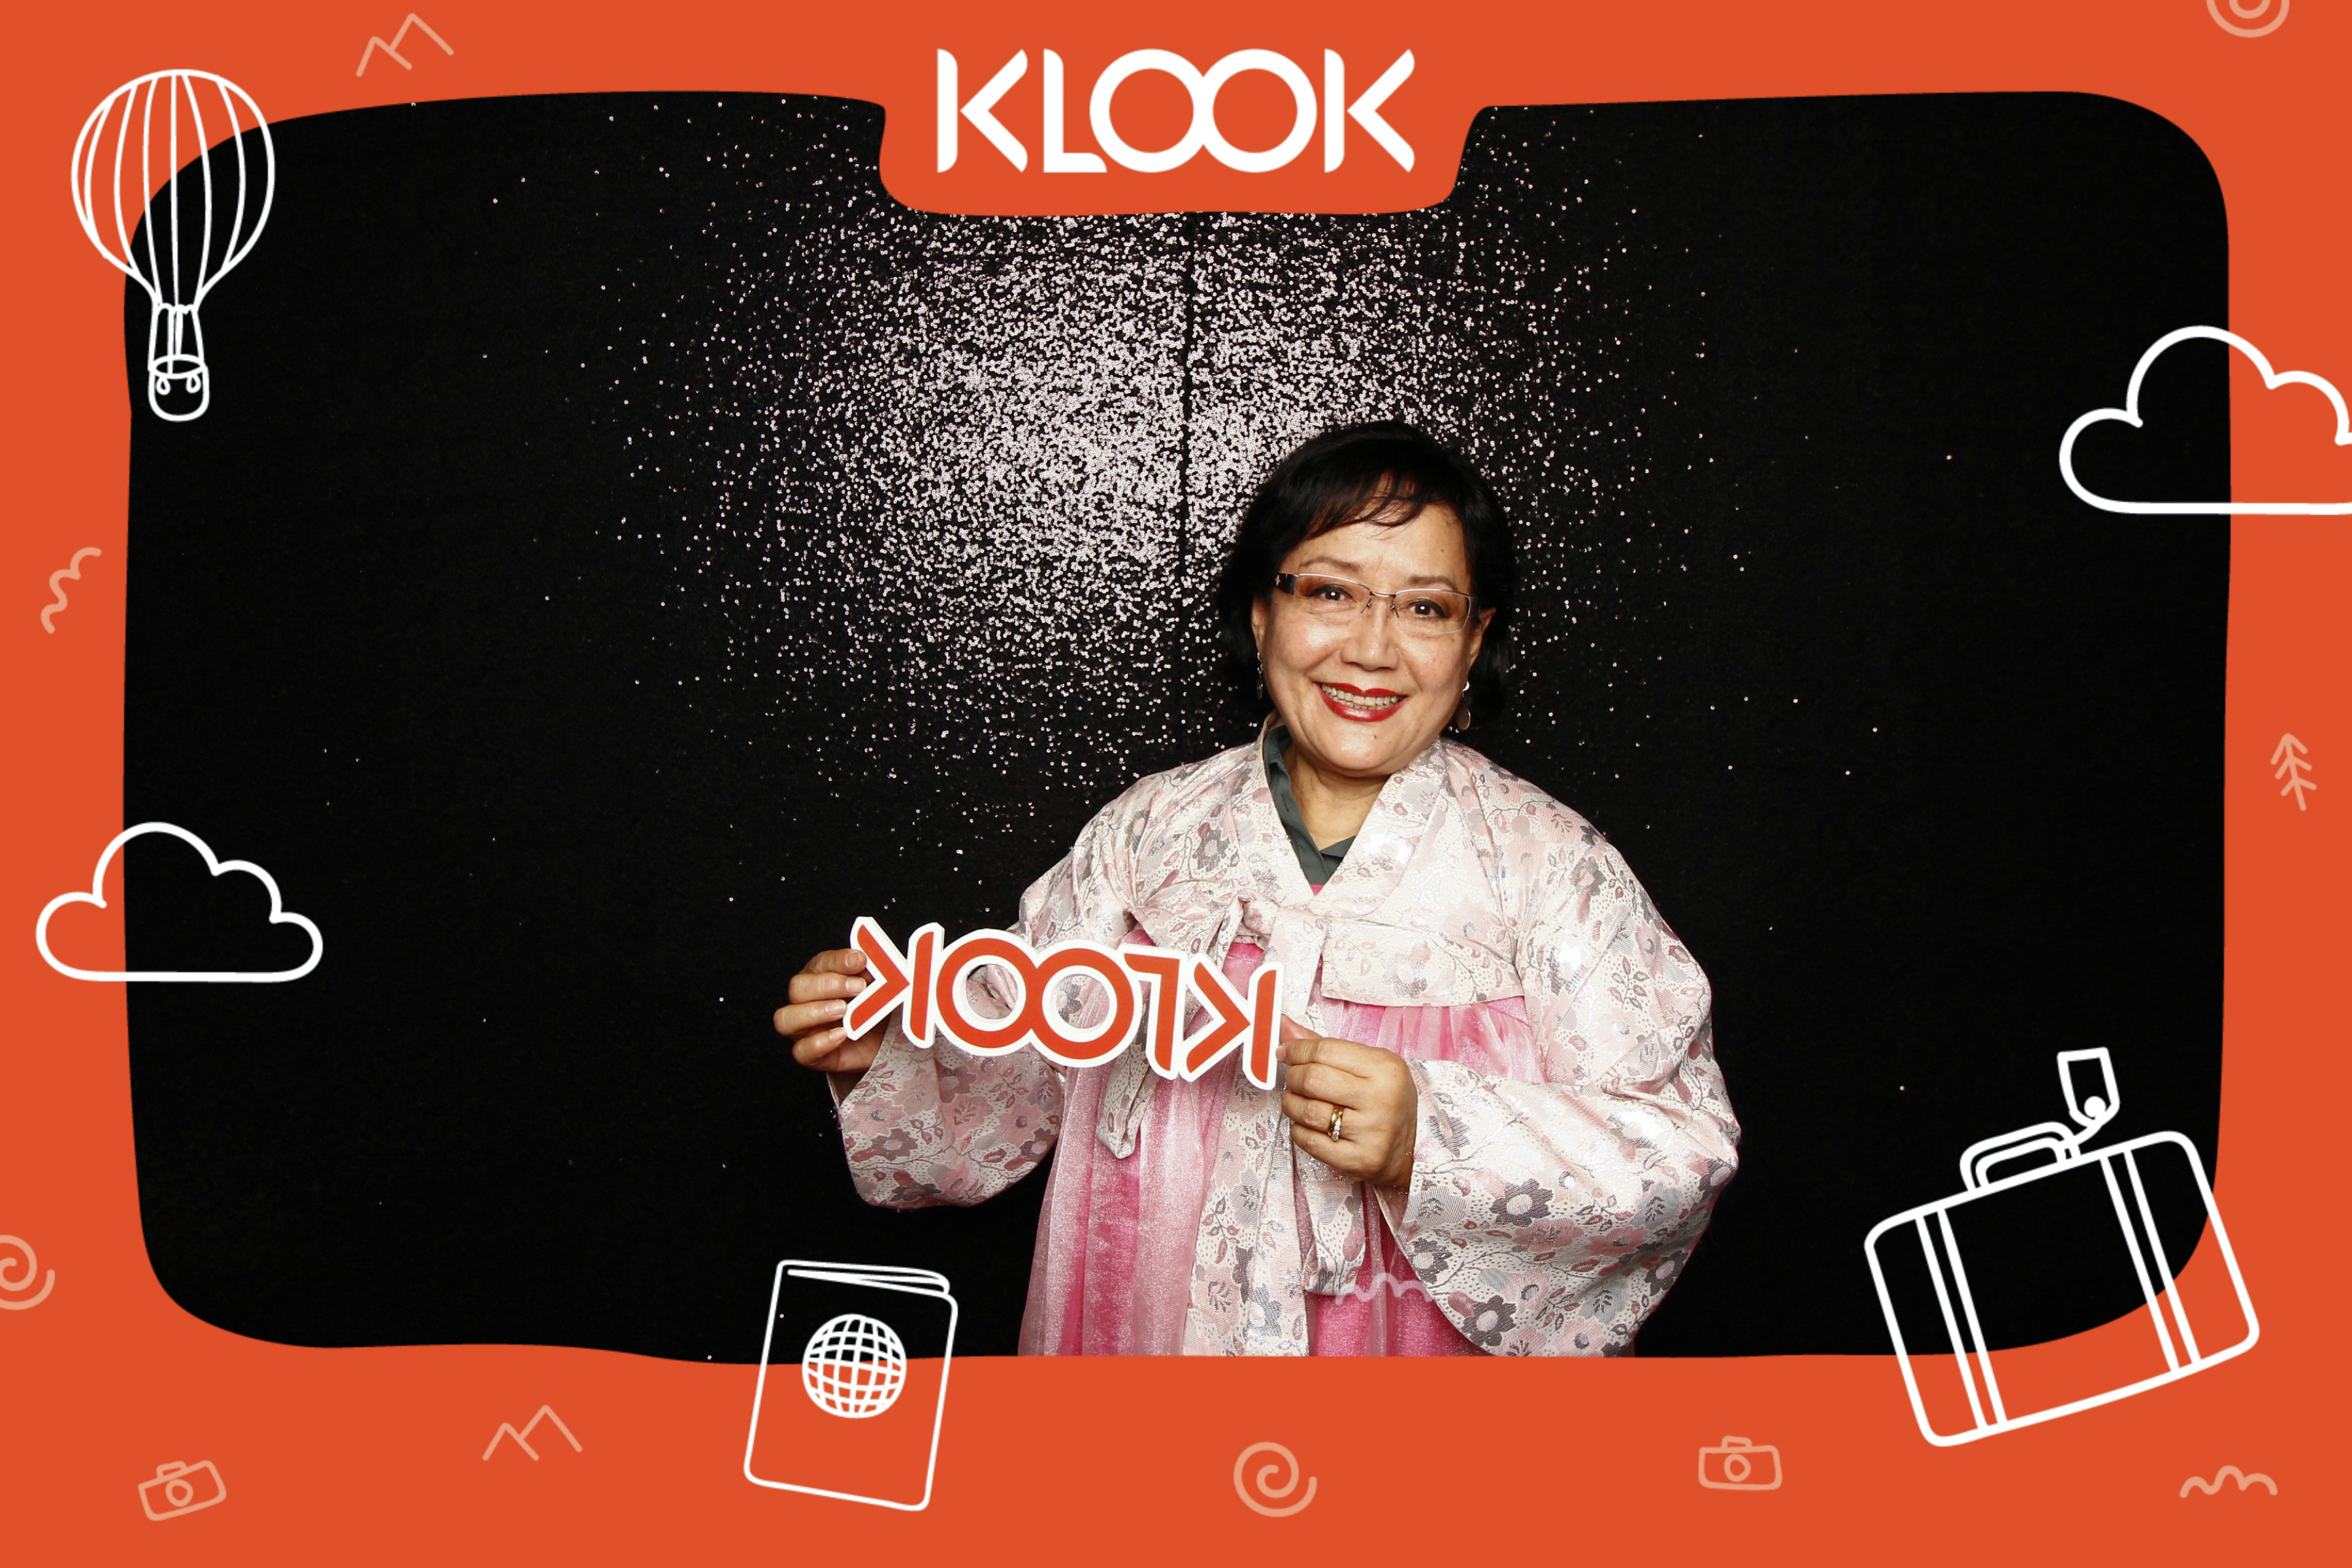 klook (16 of 120)